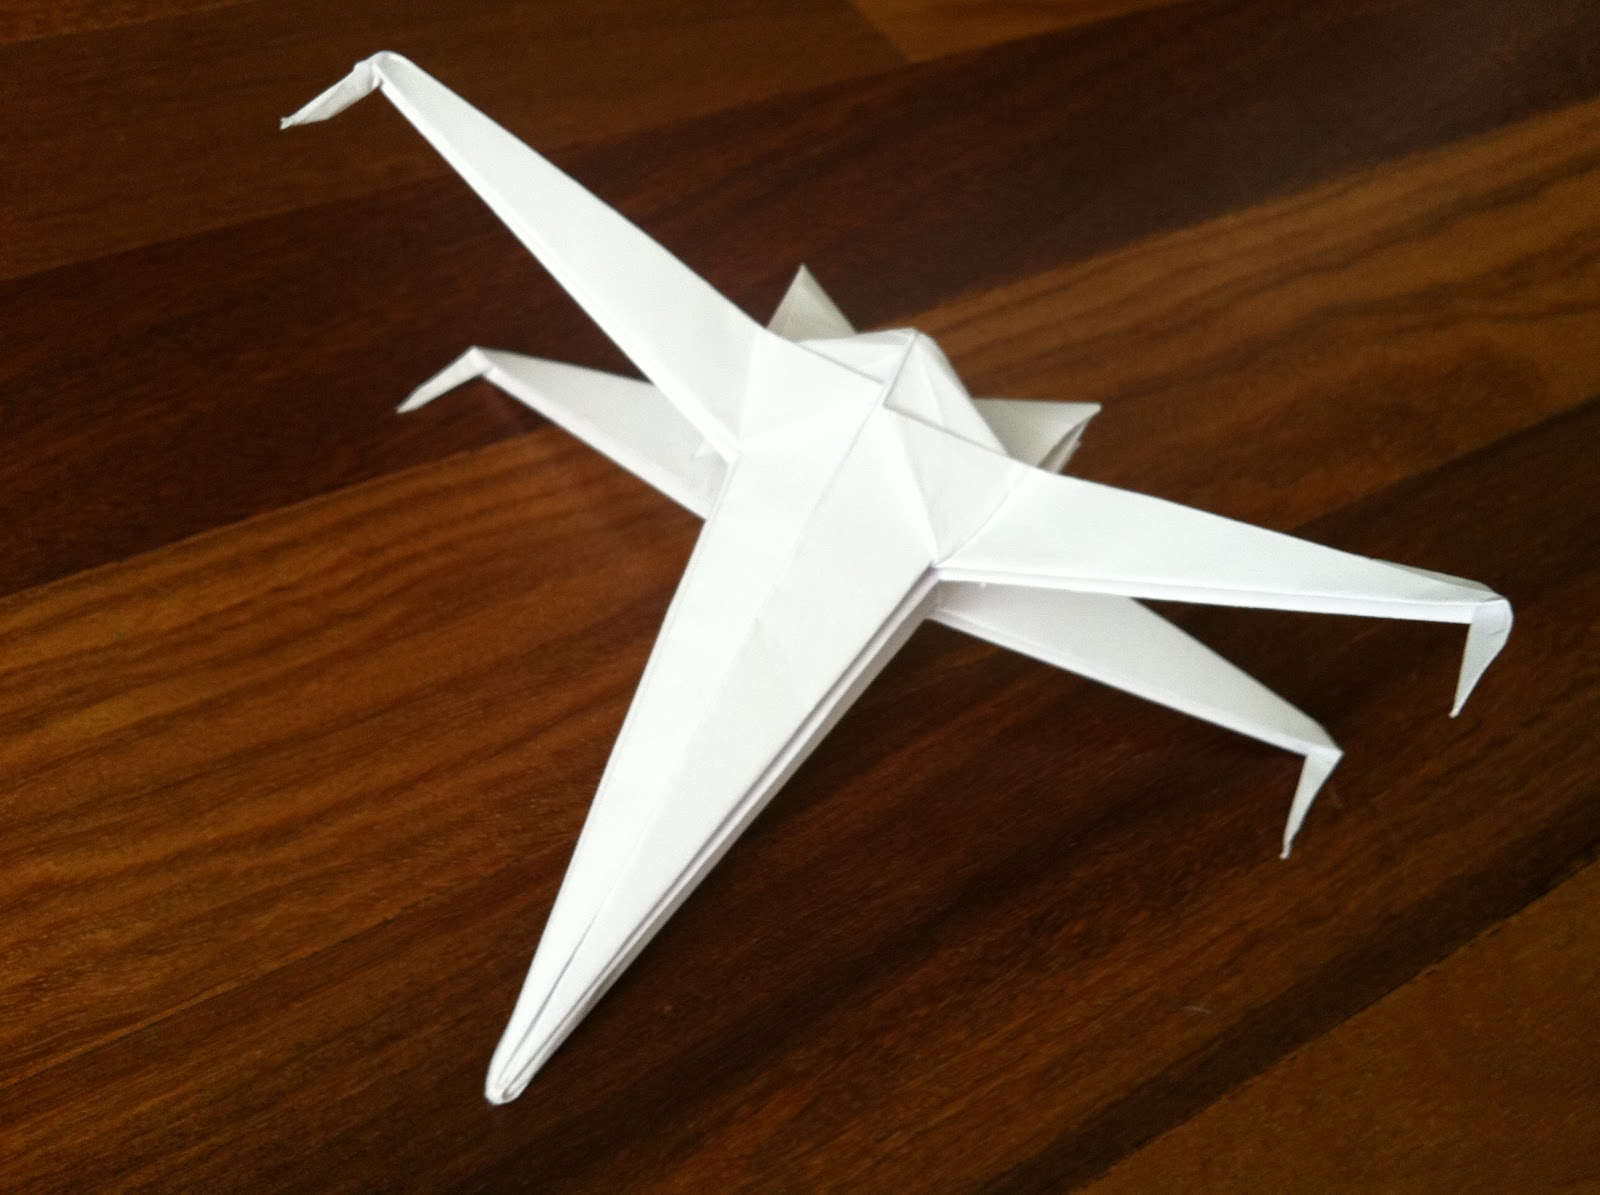 The Contemplative Creative Origami Fun